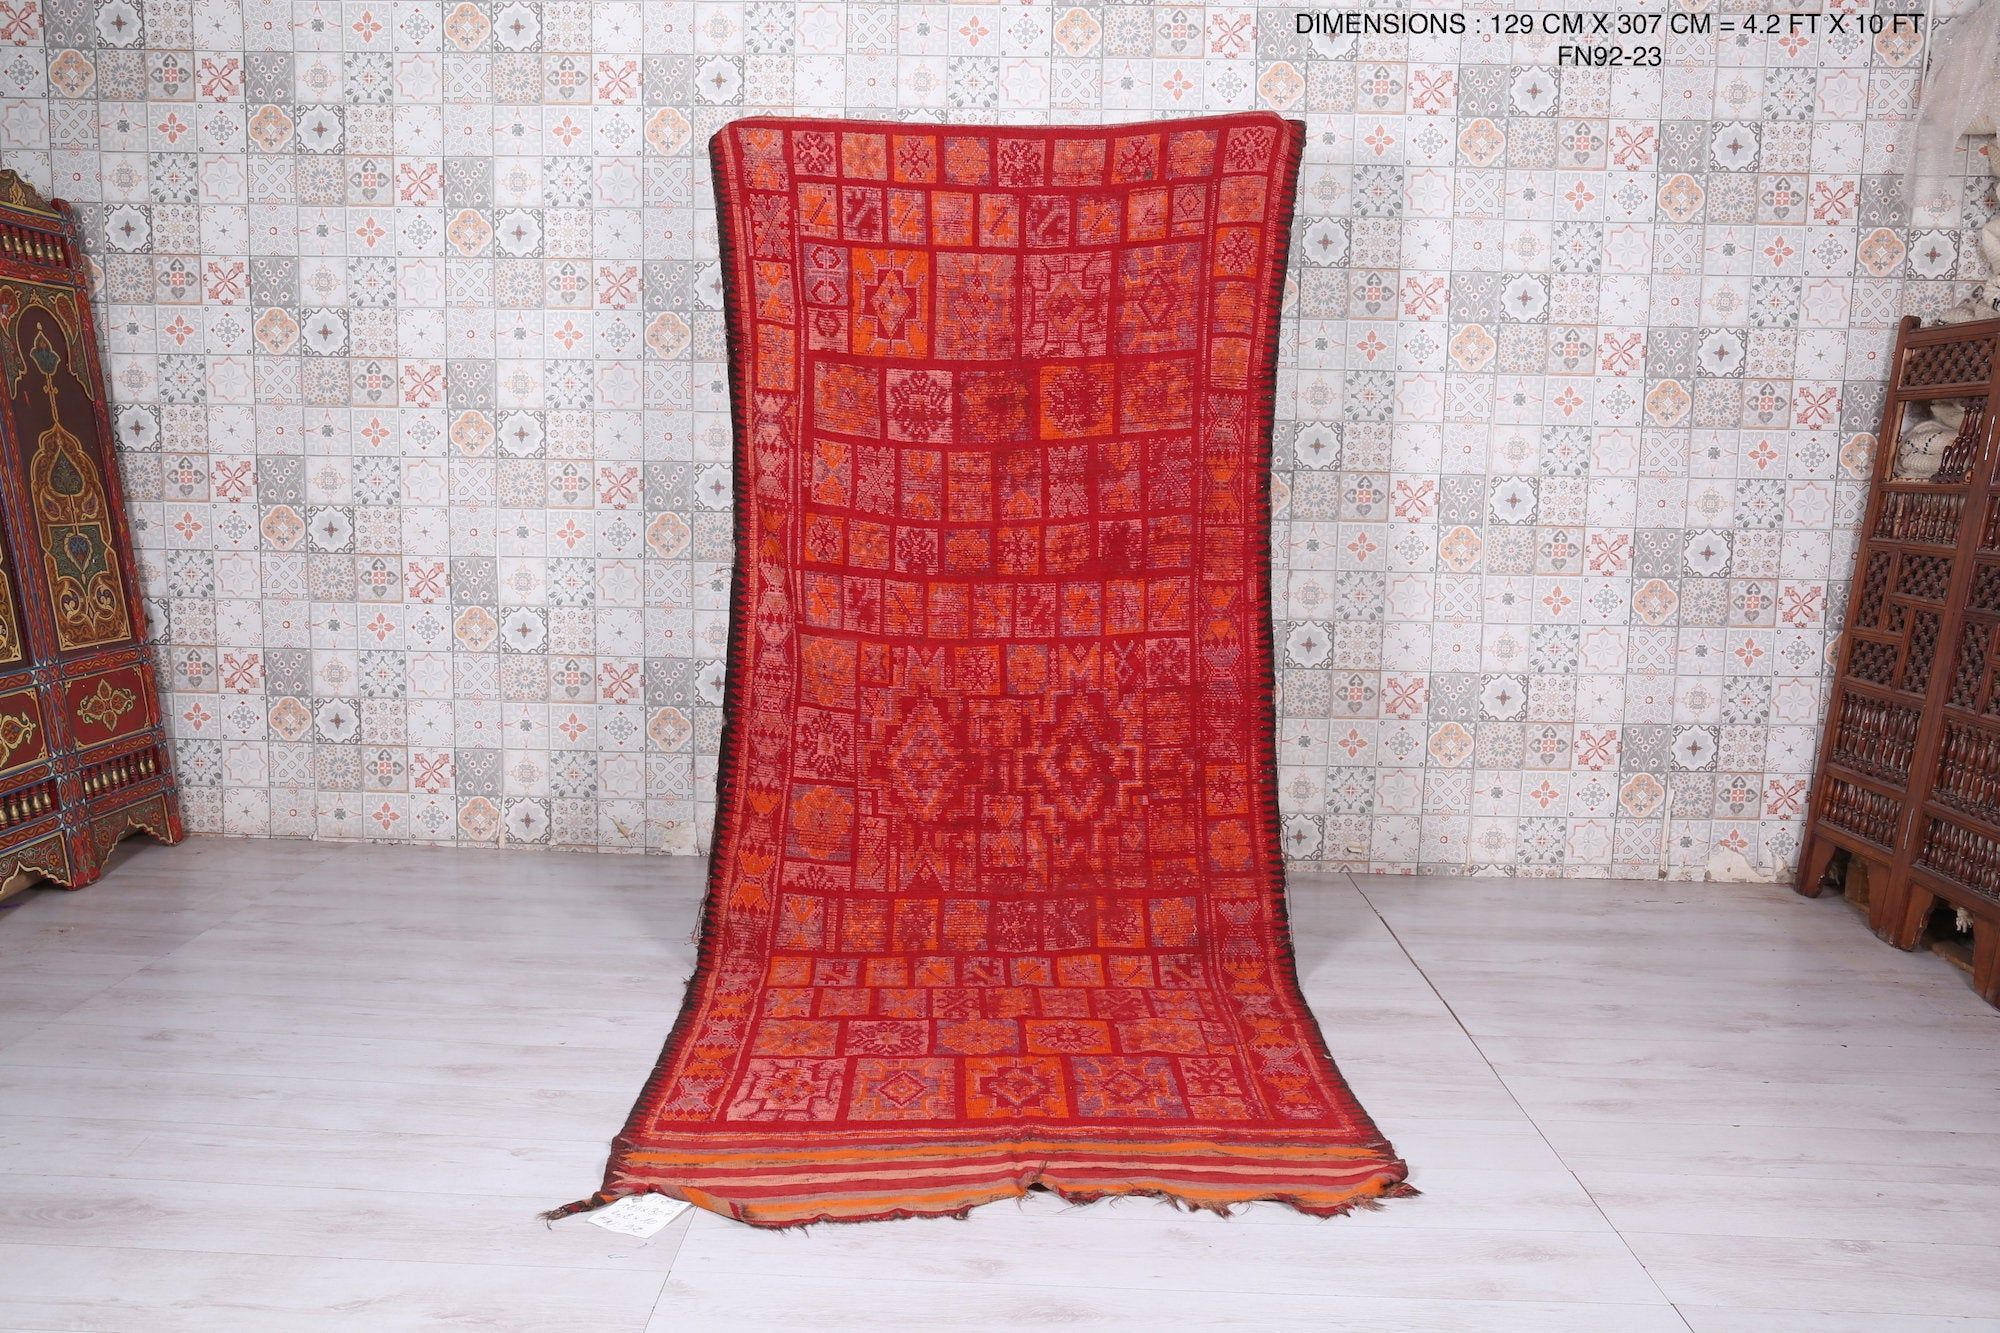 Red Hallway Berber Hallway Rug 4 2ft X 10ft Morocco Carpet Red Runner Living Room Decor Original Rug Boyfriend Gifts In 2020 Moroccan Rug Boucherouite Rug Beni Ourain Rugs